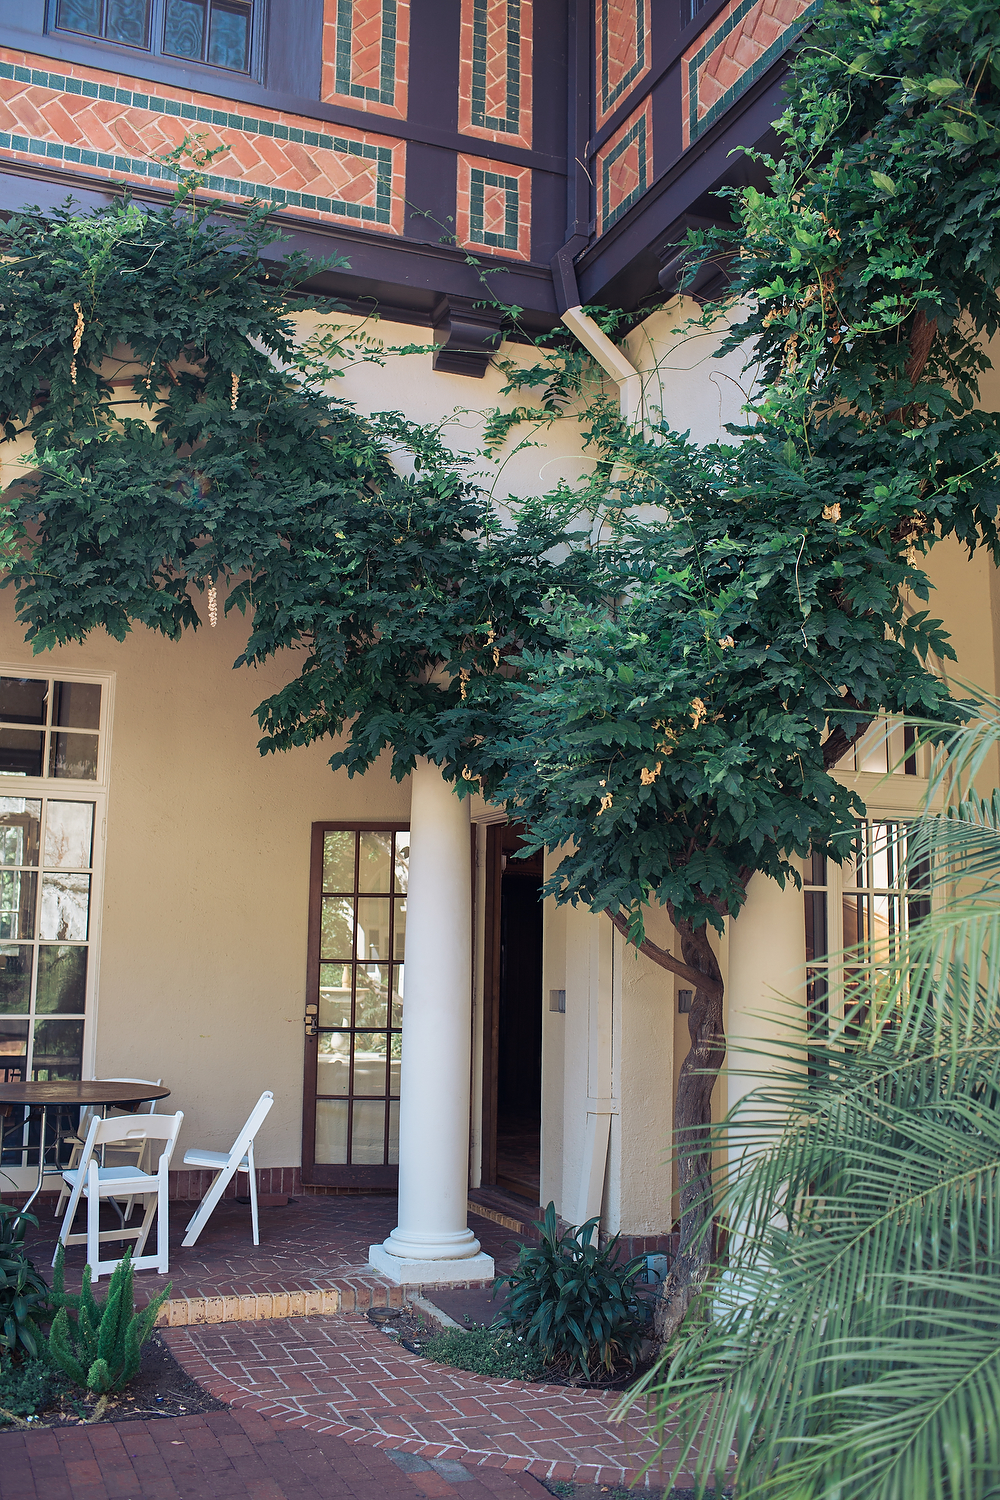 The wisteria in summer, while not in bloom, is still a gorgeous aspect of the venue